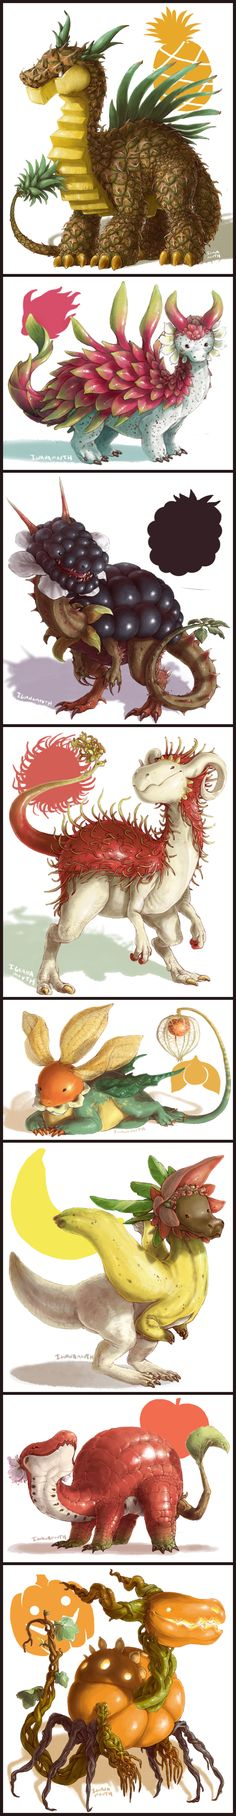 IGUANAMOUTH -- Fruit dragons. http://lizardshuffle.tumblr.com/post/129794410774/iguanamouth-fruit-dragons-click-through-to                                                                                                                                                                                 Más